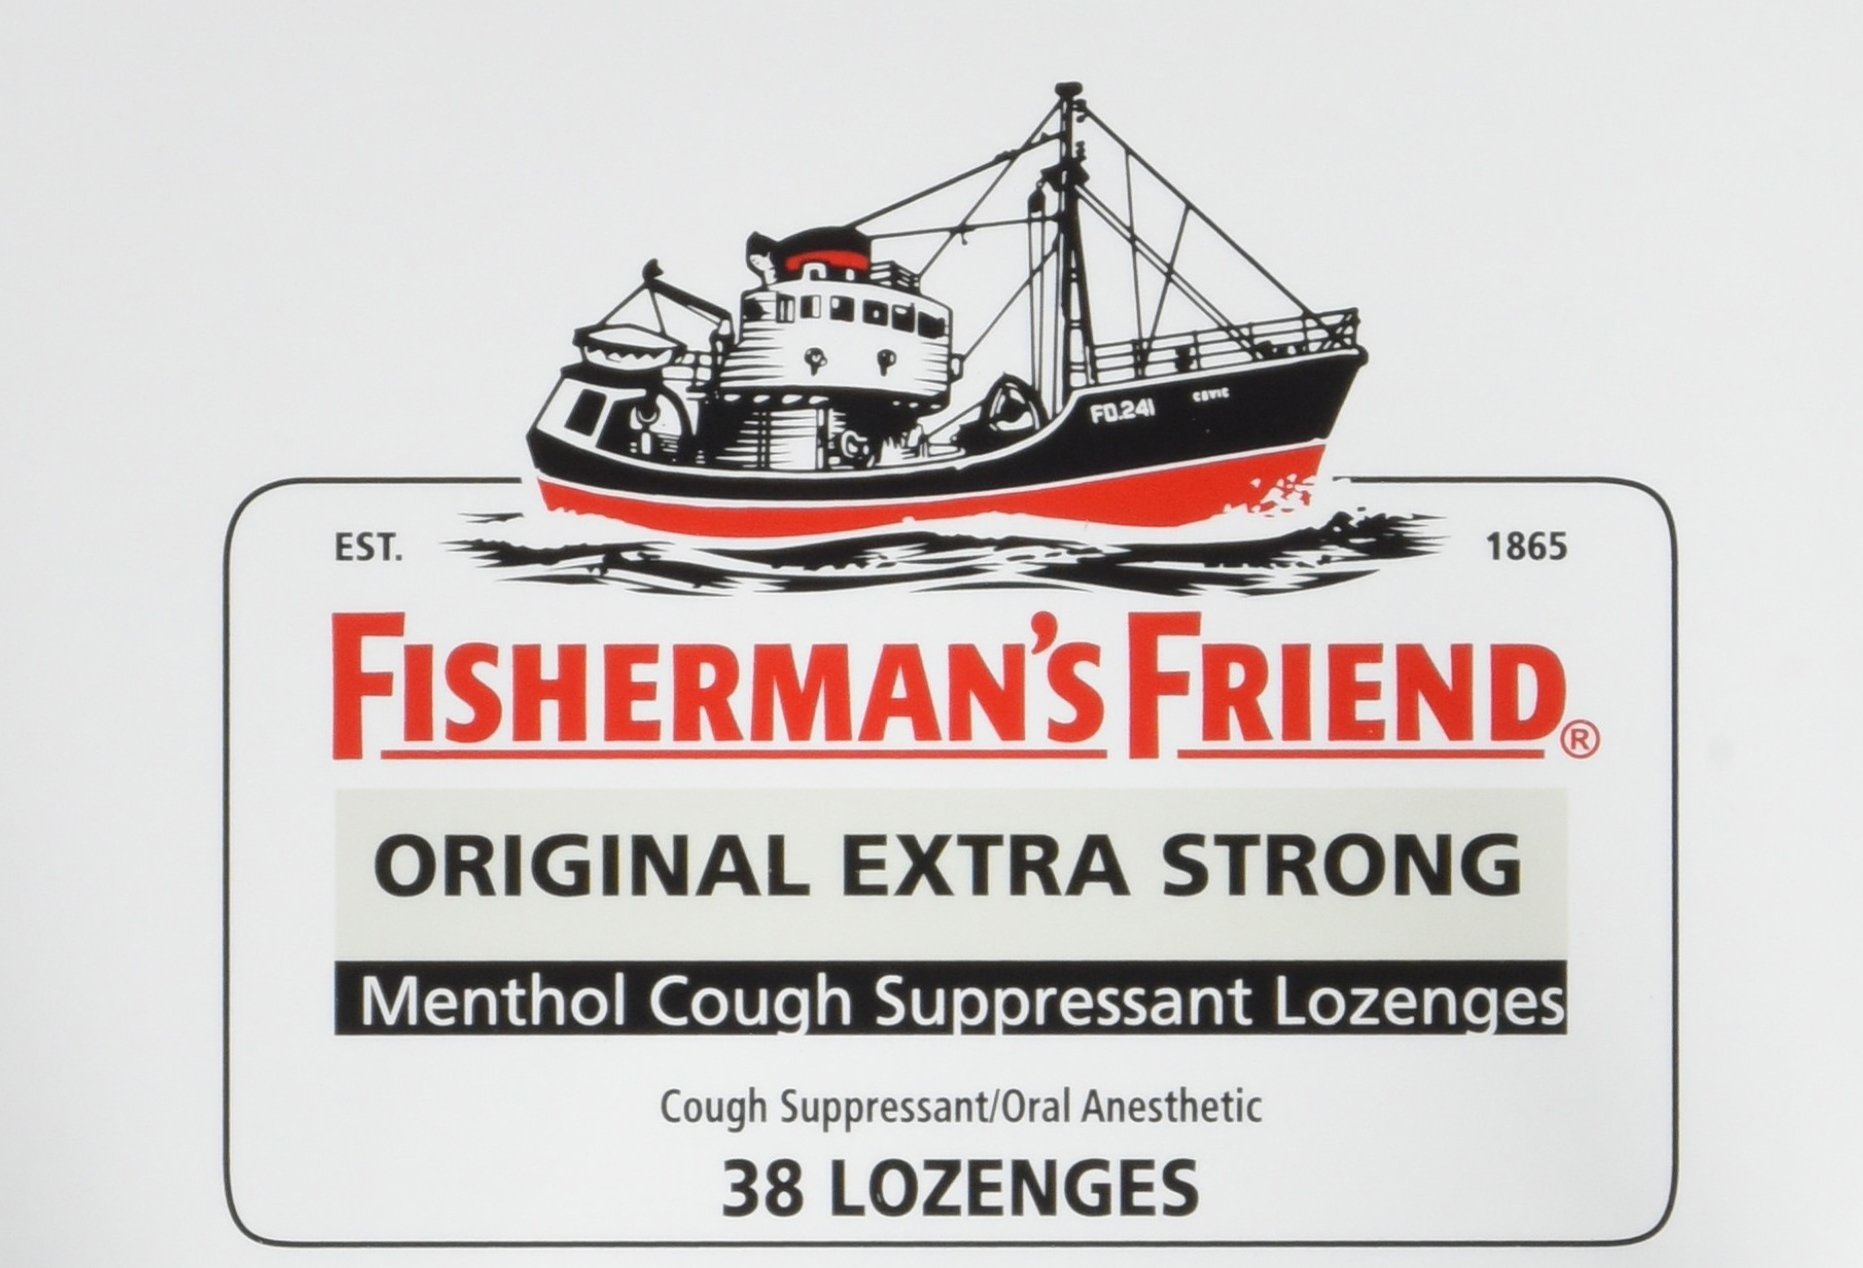 Cough Drops by Fisherman's Friend, Cough Suppressant and Sore Throat Lozenges, Original Extra Strong Menthol Flavor, 38 Count (6 Pack) by Fisherman's Friend